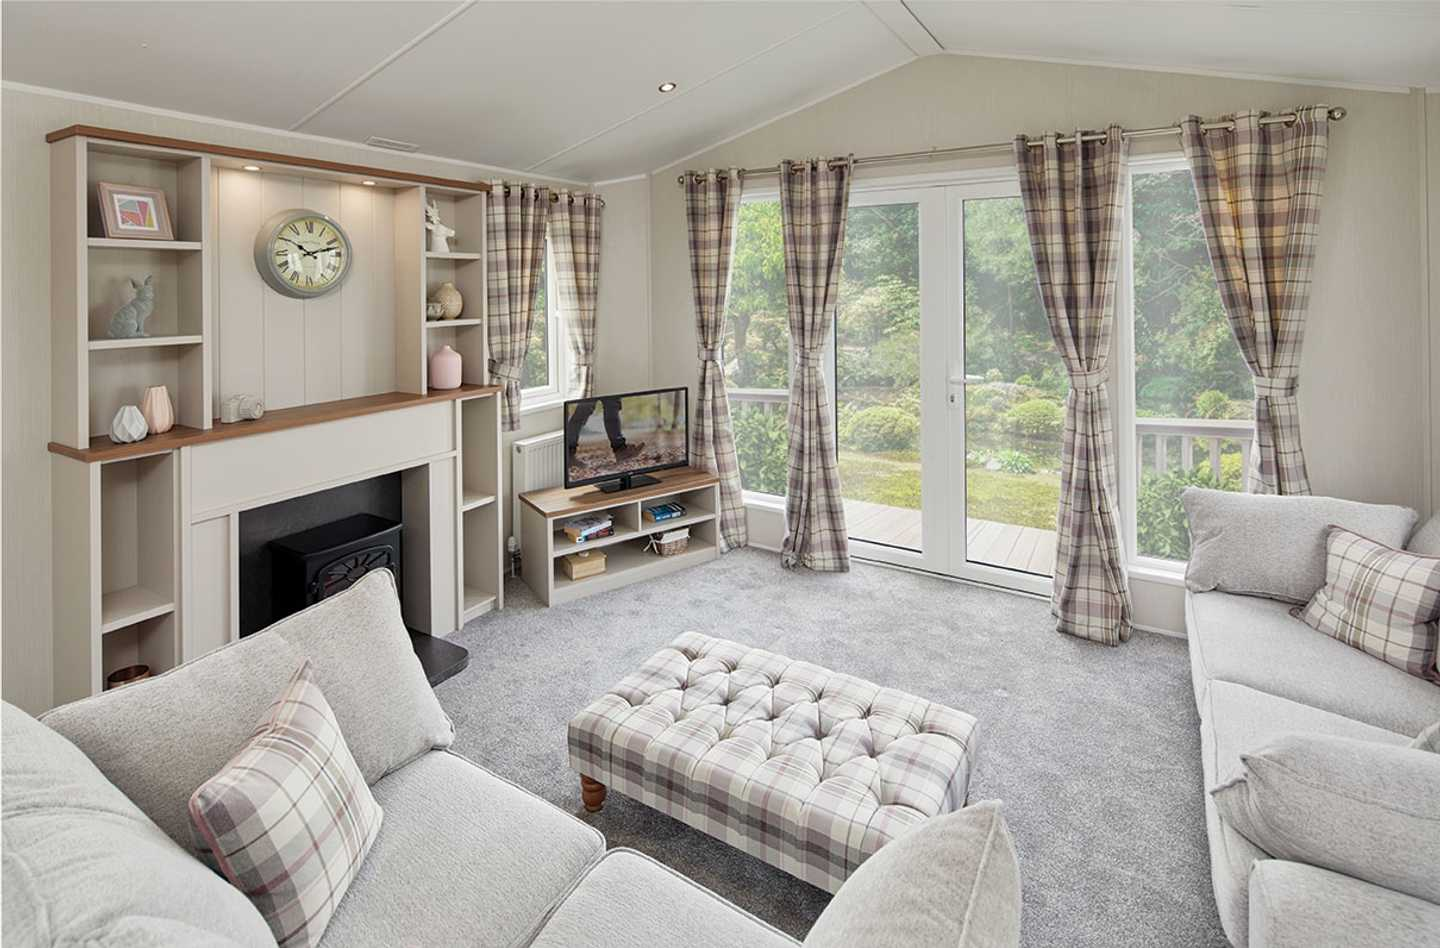 New Willerby Sheraton